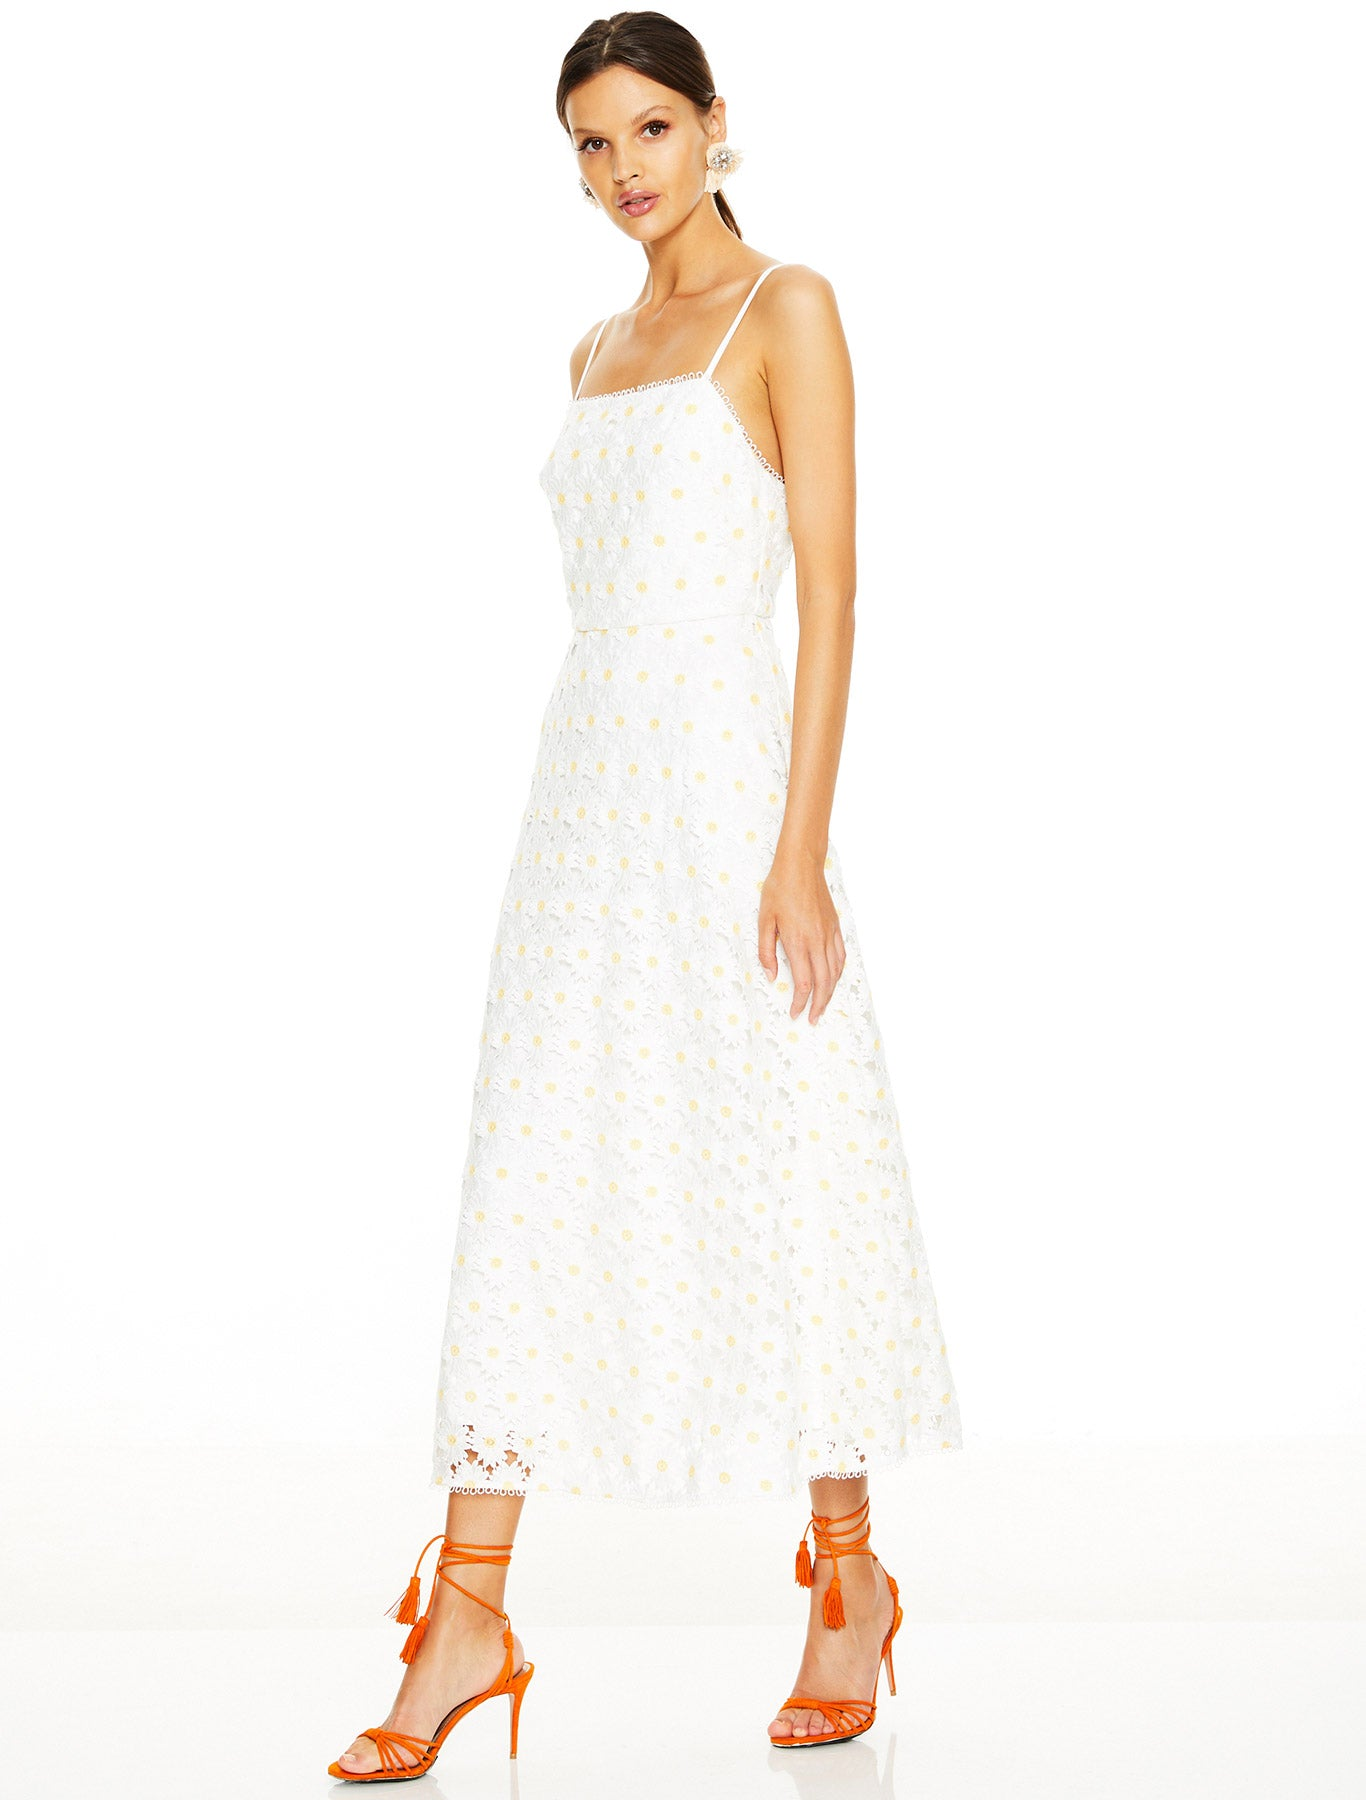 SPRITZER MIDI DRESS